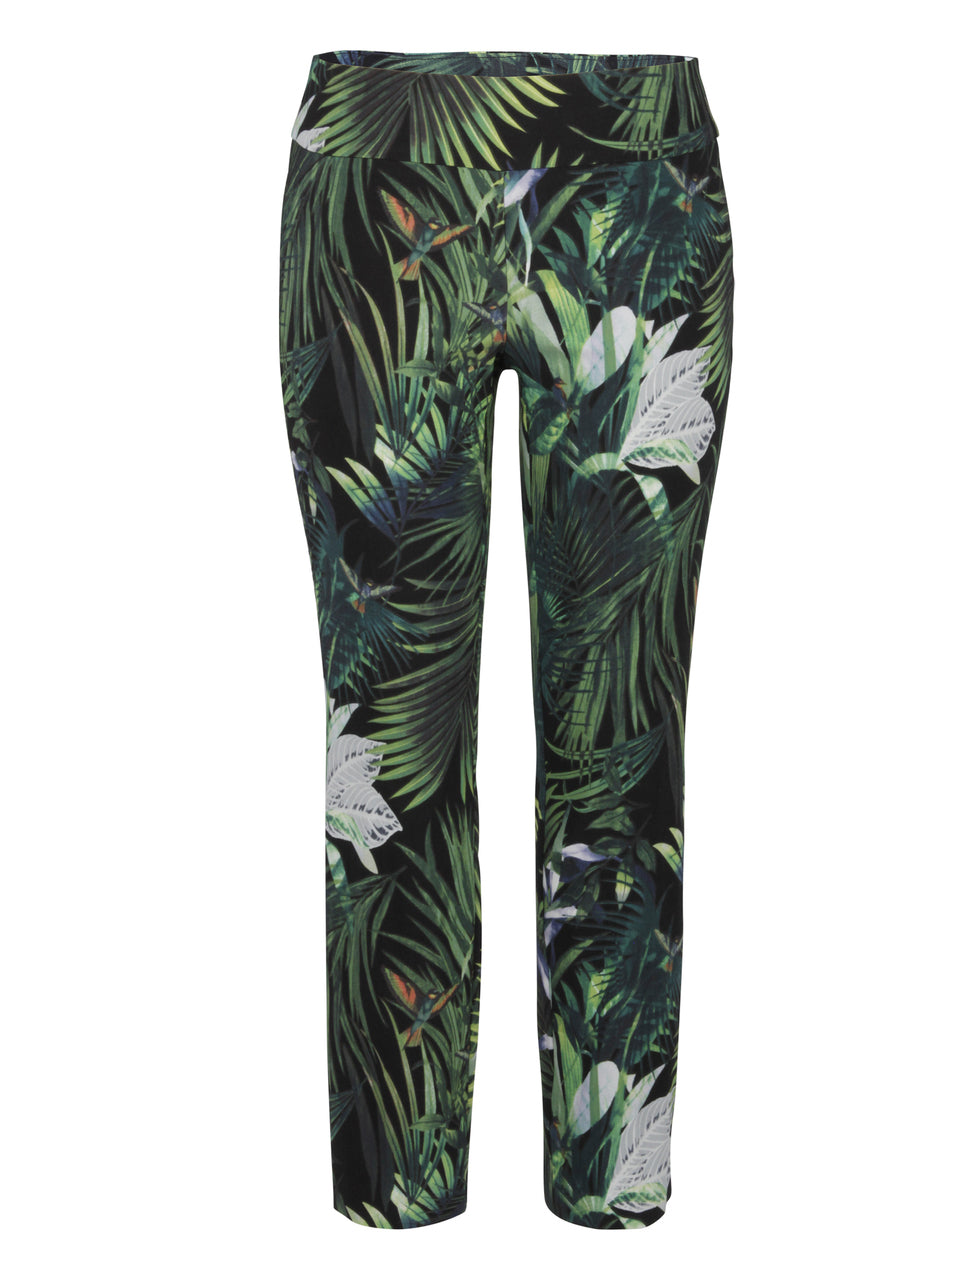 UP Pants Green Utopia Print 6577UP